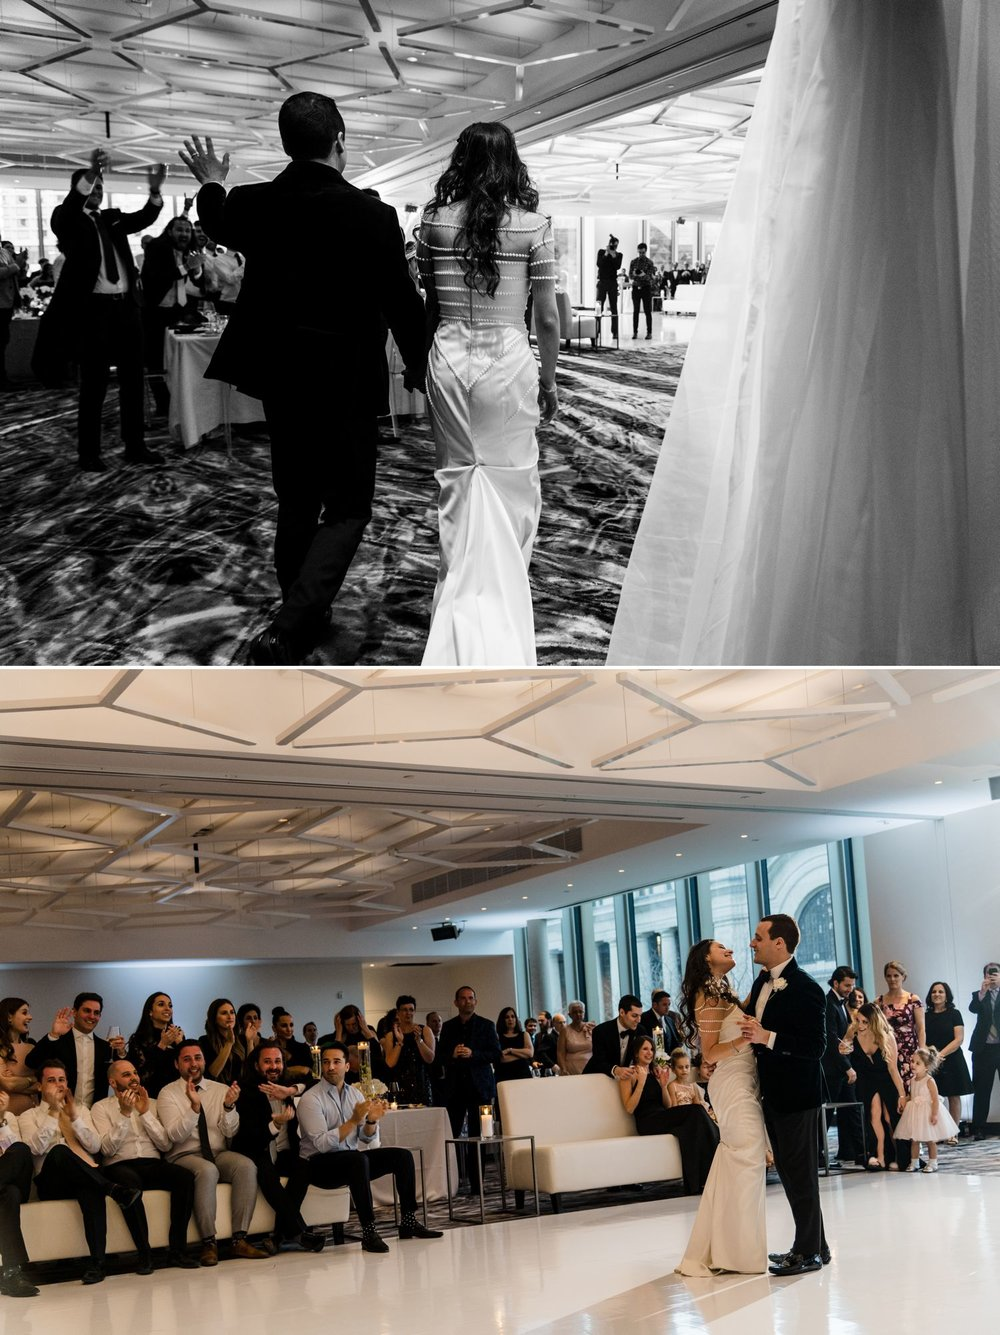 The bride and groom during the entrance and first dance at their wedding reception at the NAC in downtown Ottawa